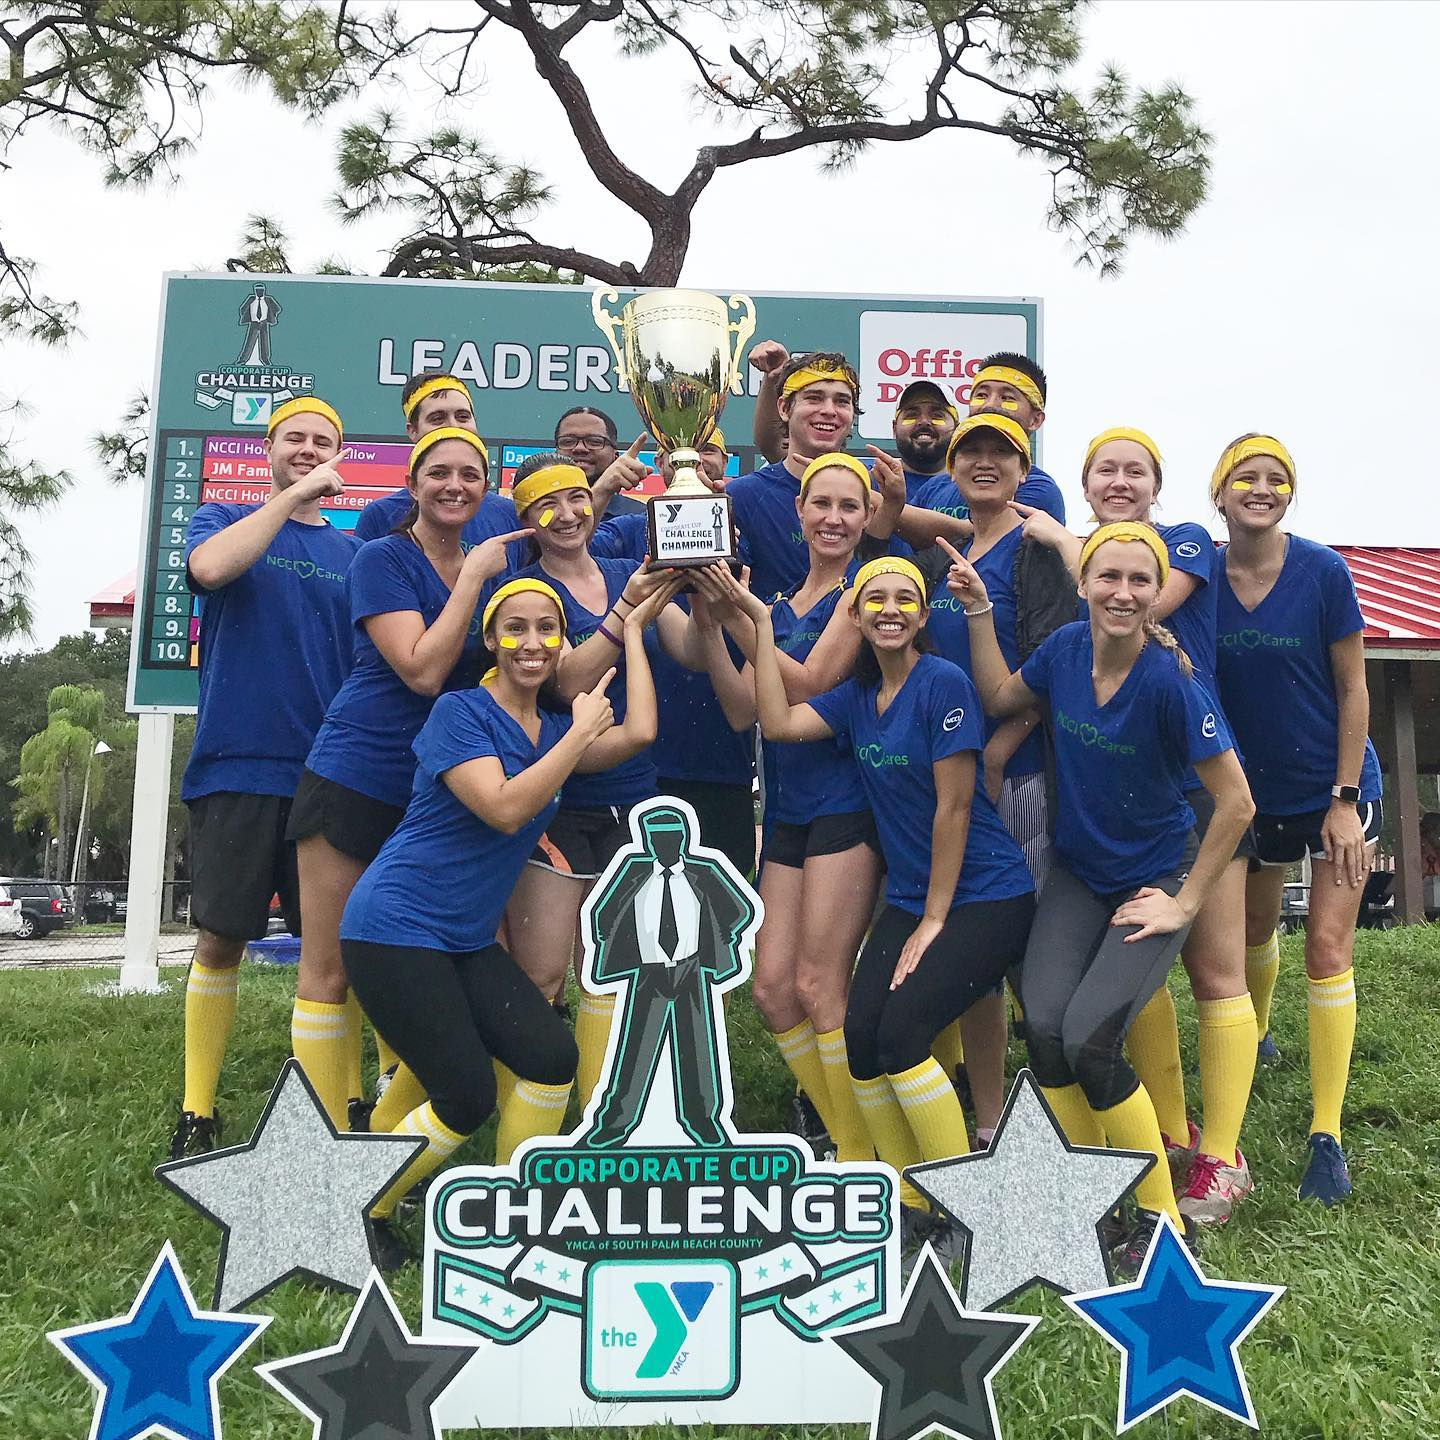 YMCA Corporate Cup Challenge 2019 winners Custom Yard Card